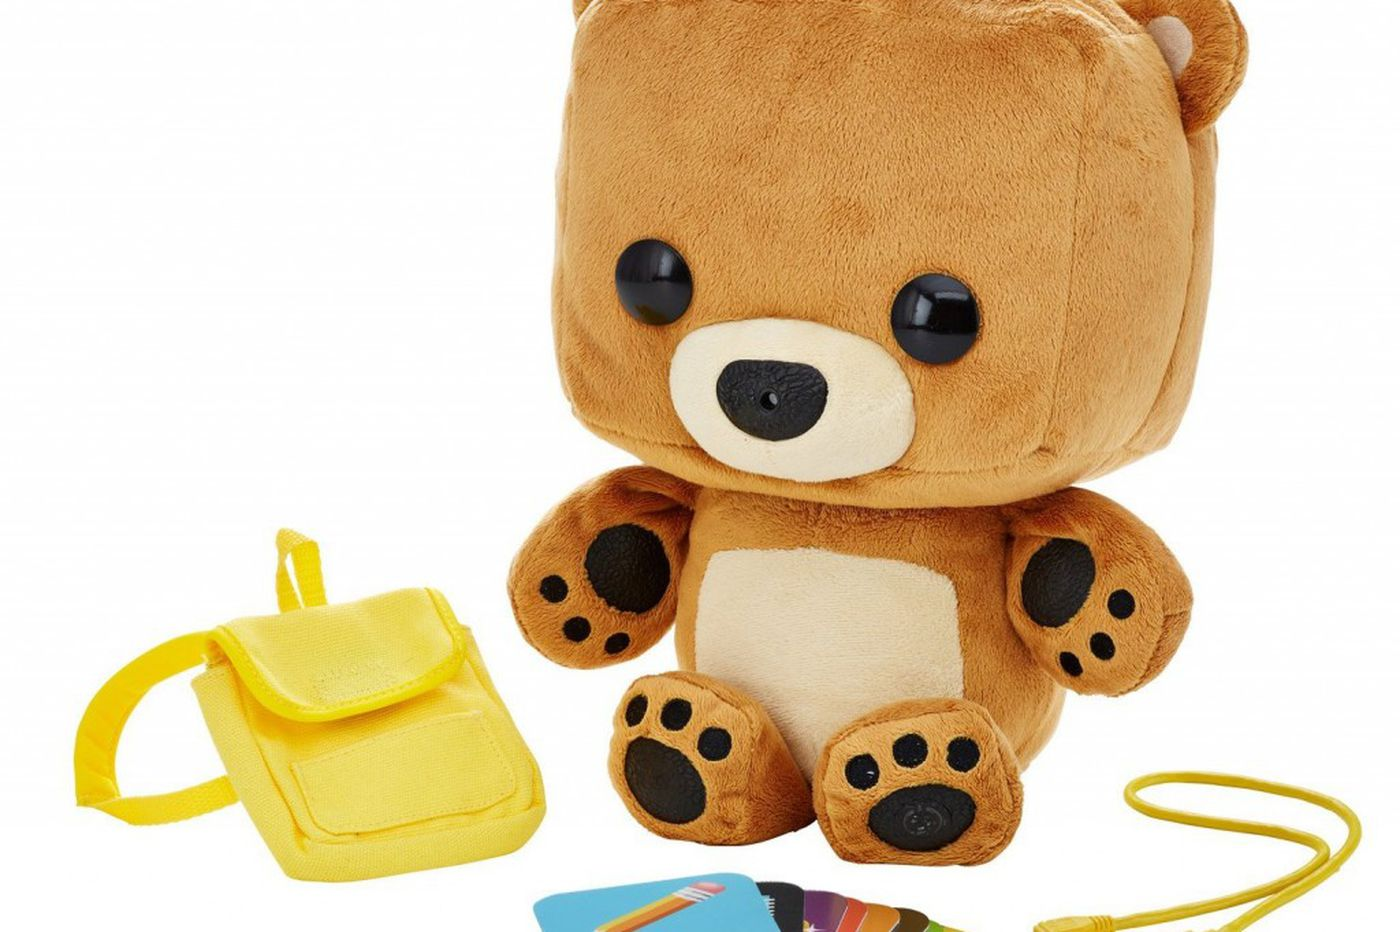 Beware the holiday 'smart toys' that spy on your kids